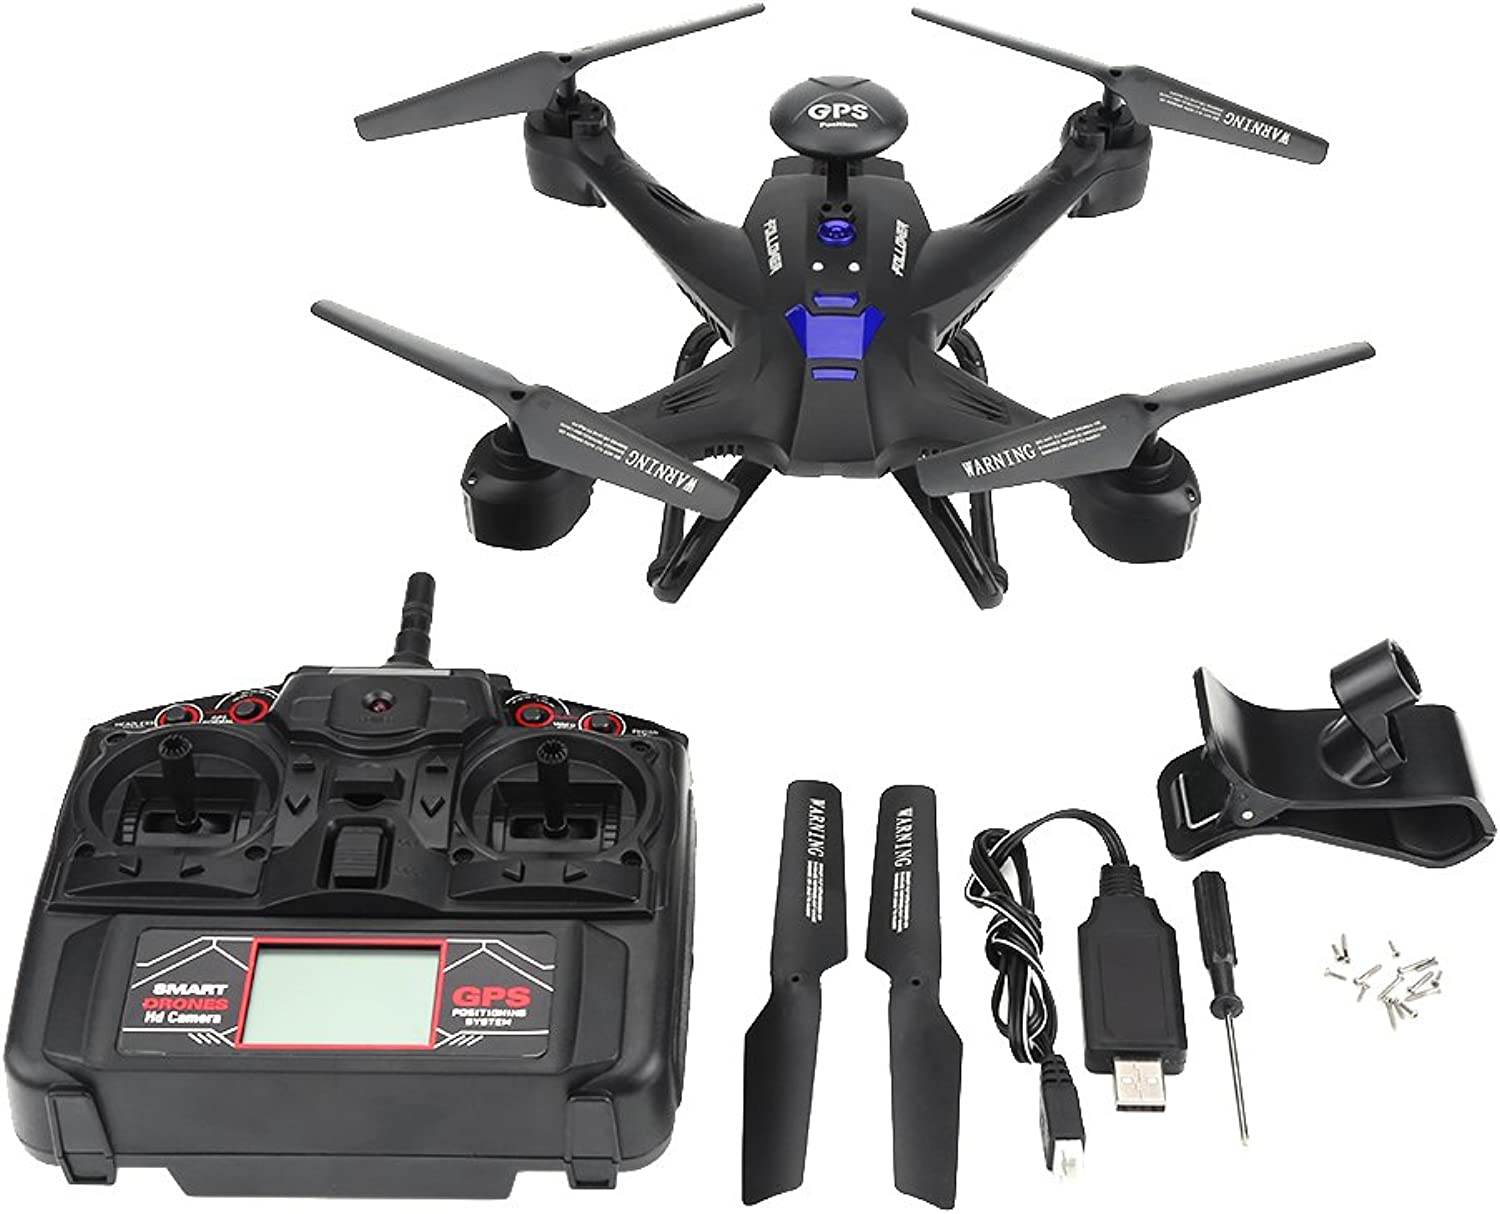 RC Quadcopter Drone, WiFi Hhe Halten RC Drone Headless Modus mit 2.0MP Kamera